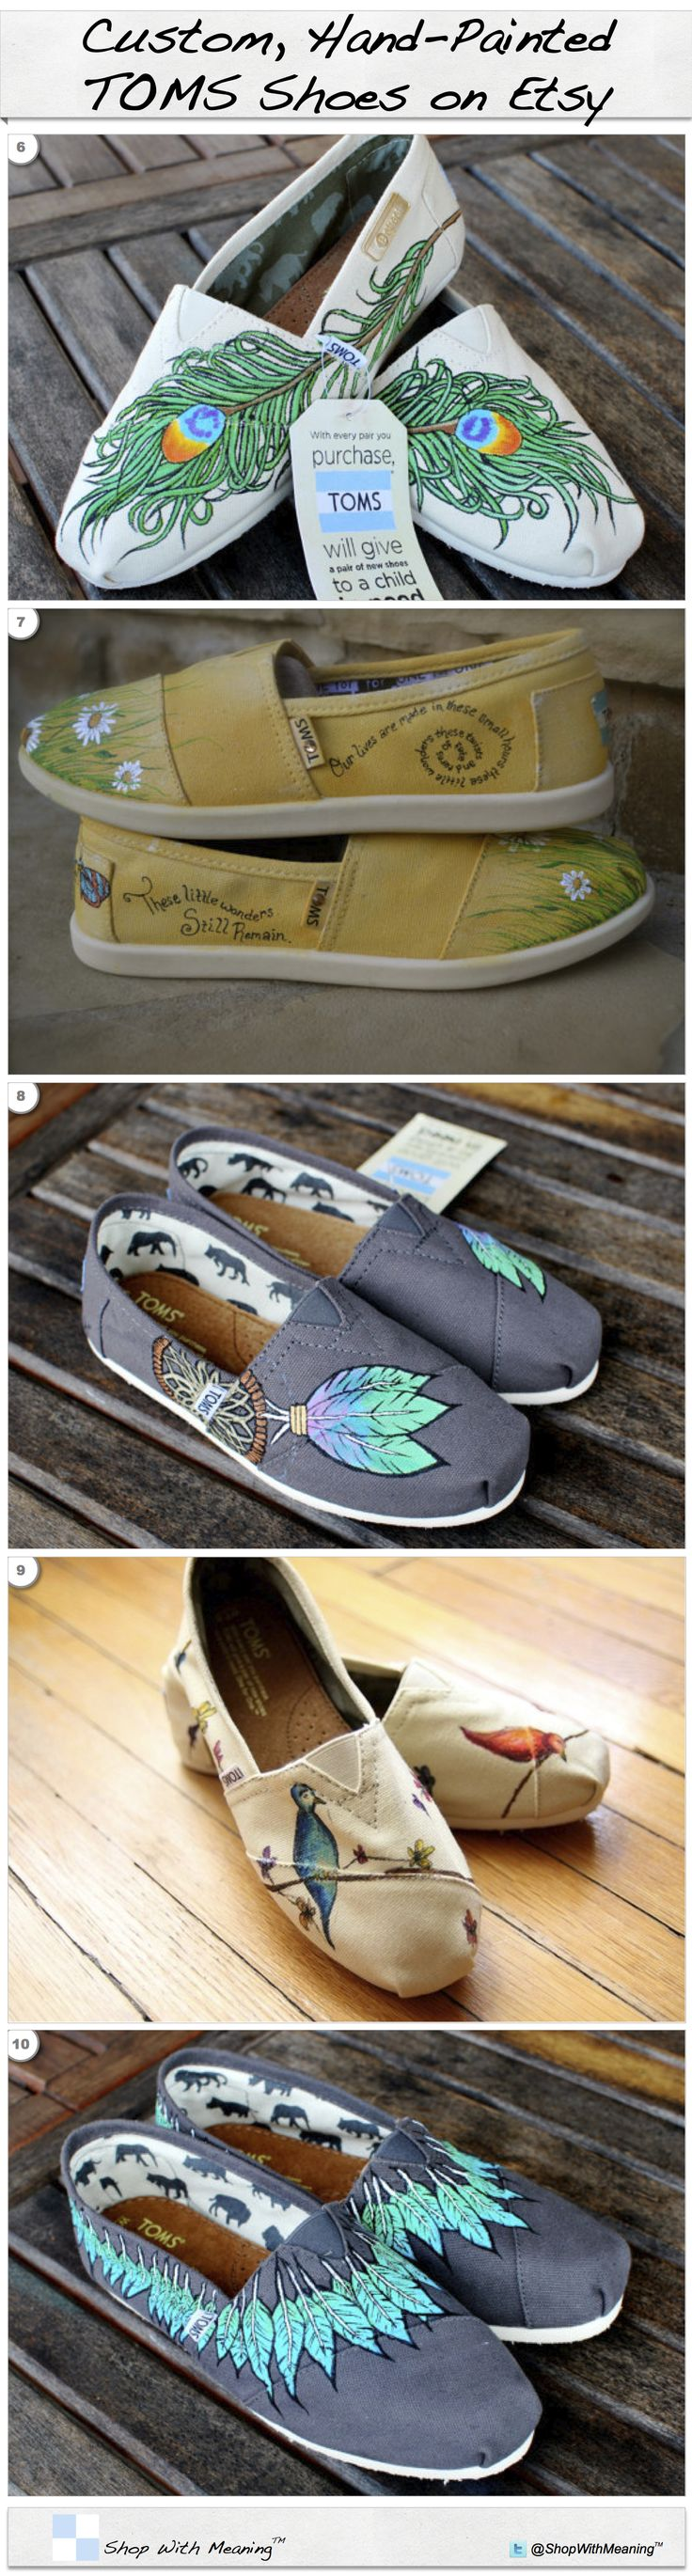 Toms Cheap,Thinking of getting a pair like this. These just have to be added to my Shoes collection!